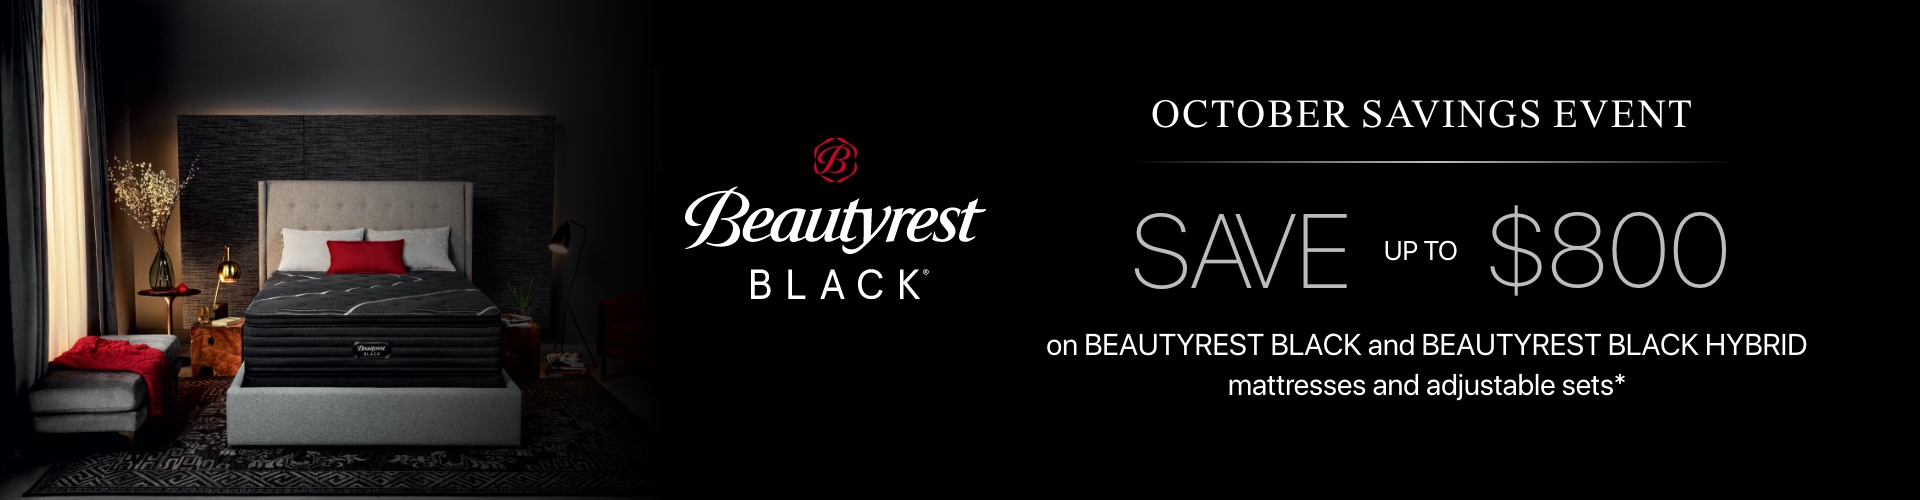 beautyrest black mattresses on sale for fall